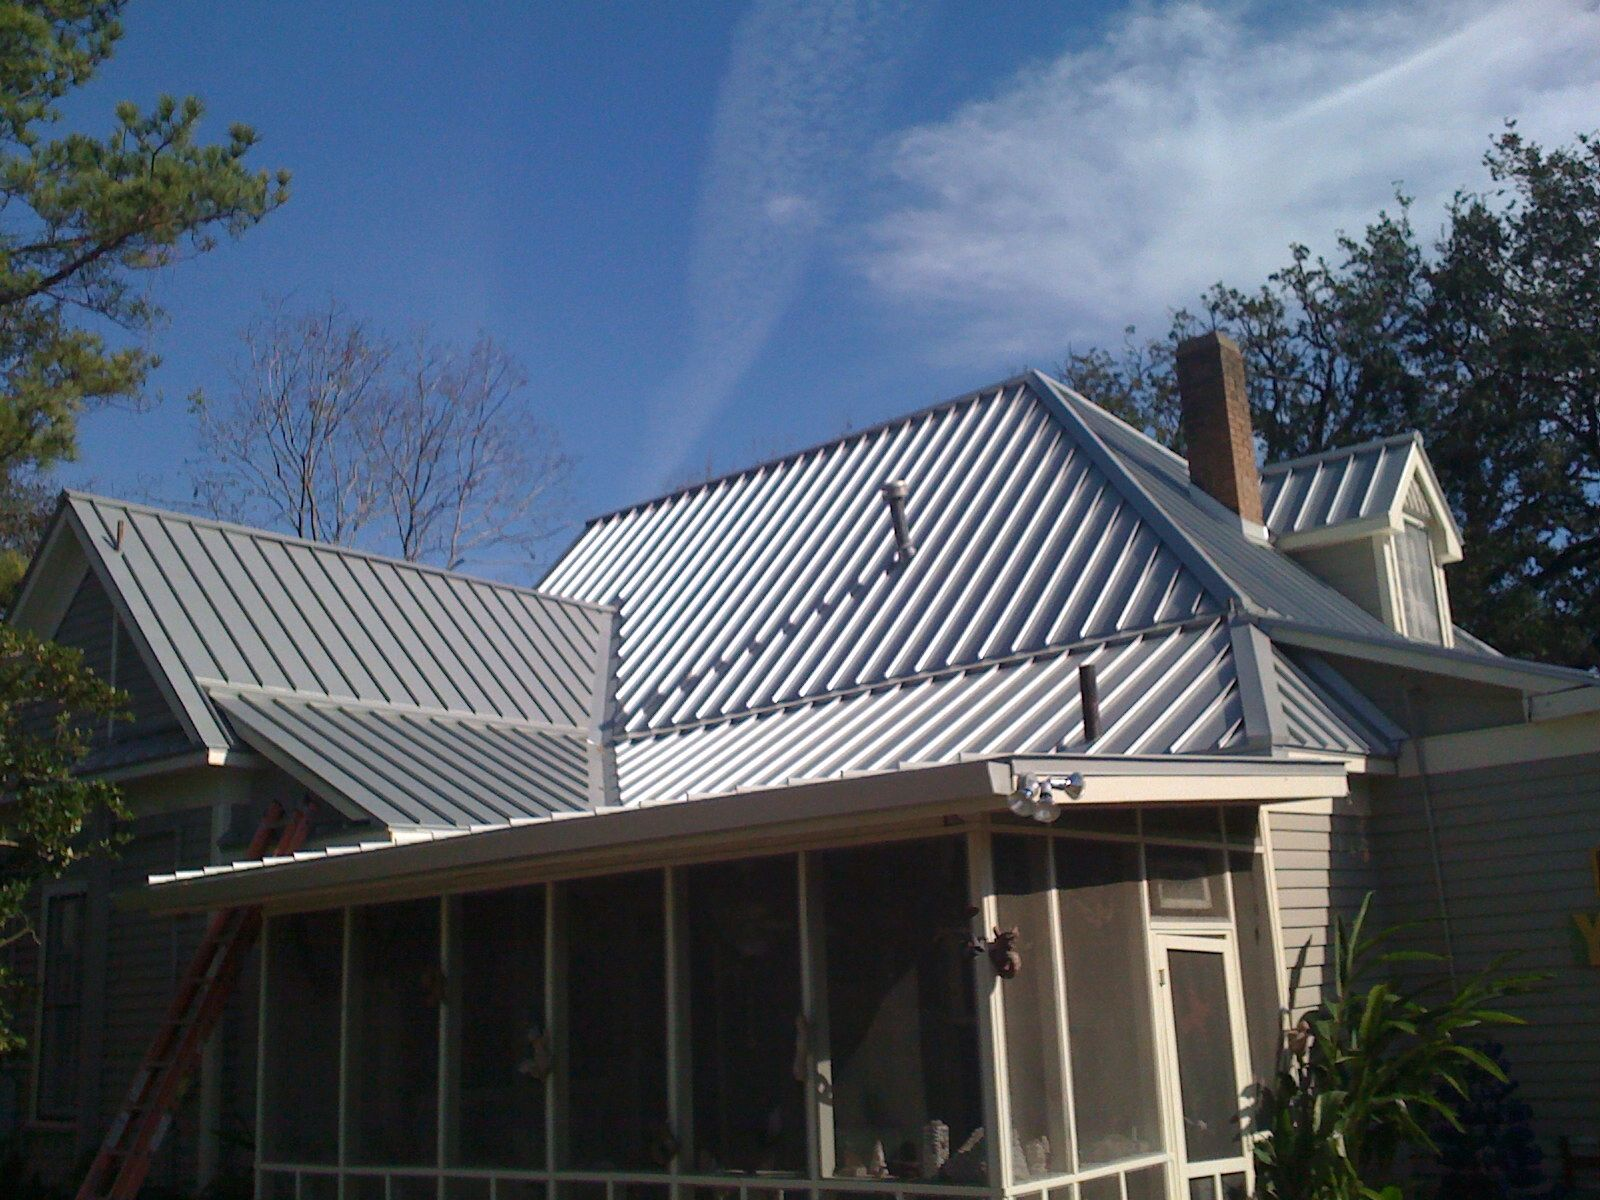 24 Gauge Silver Metallic Standing Seam Metal Roof Historical Home In  Houston The Heights Texas